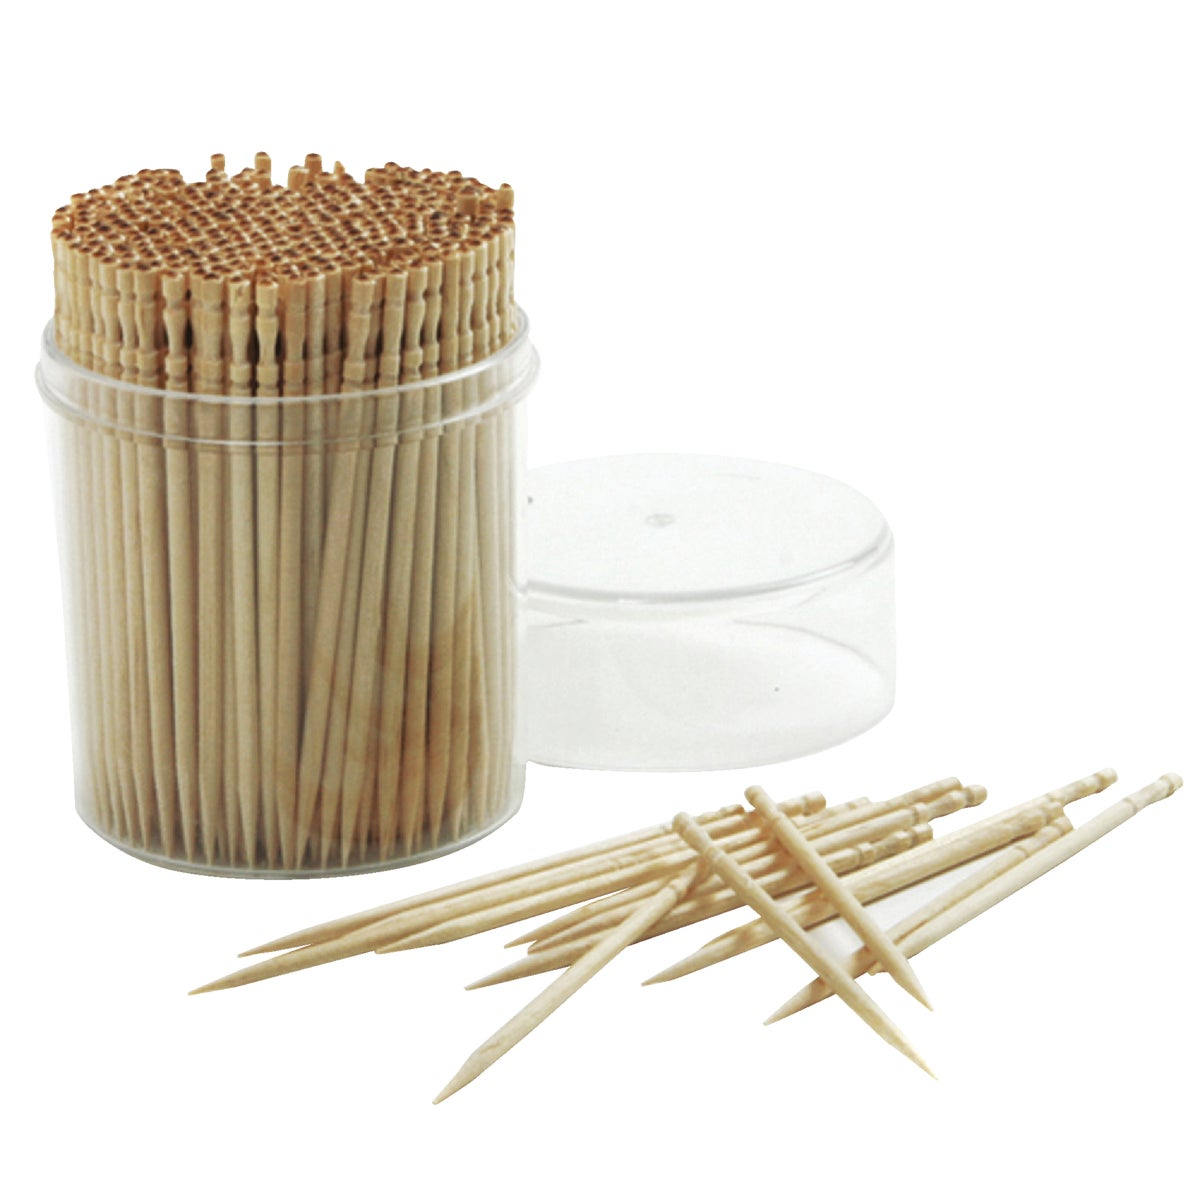 360PC WOOD TOOTHPICKS - 1914 by Norpro